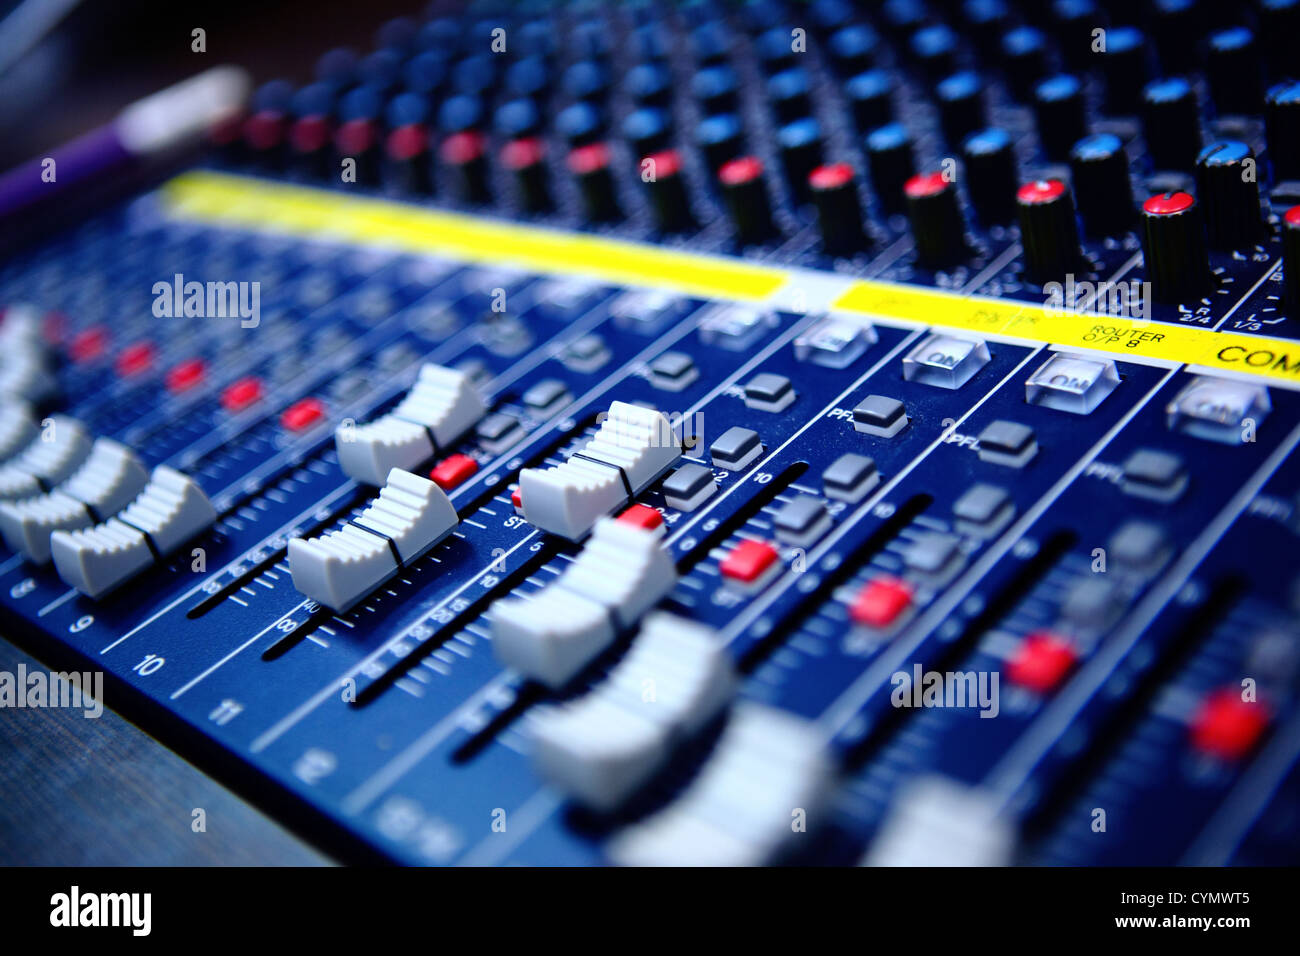 controls of audio mixing console - Stock Image